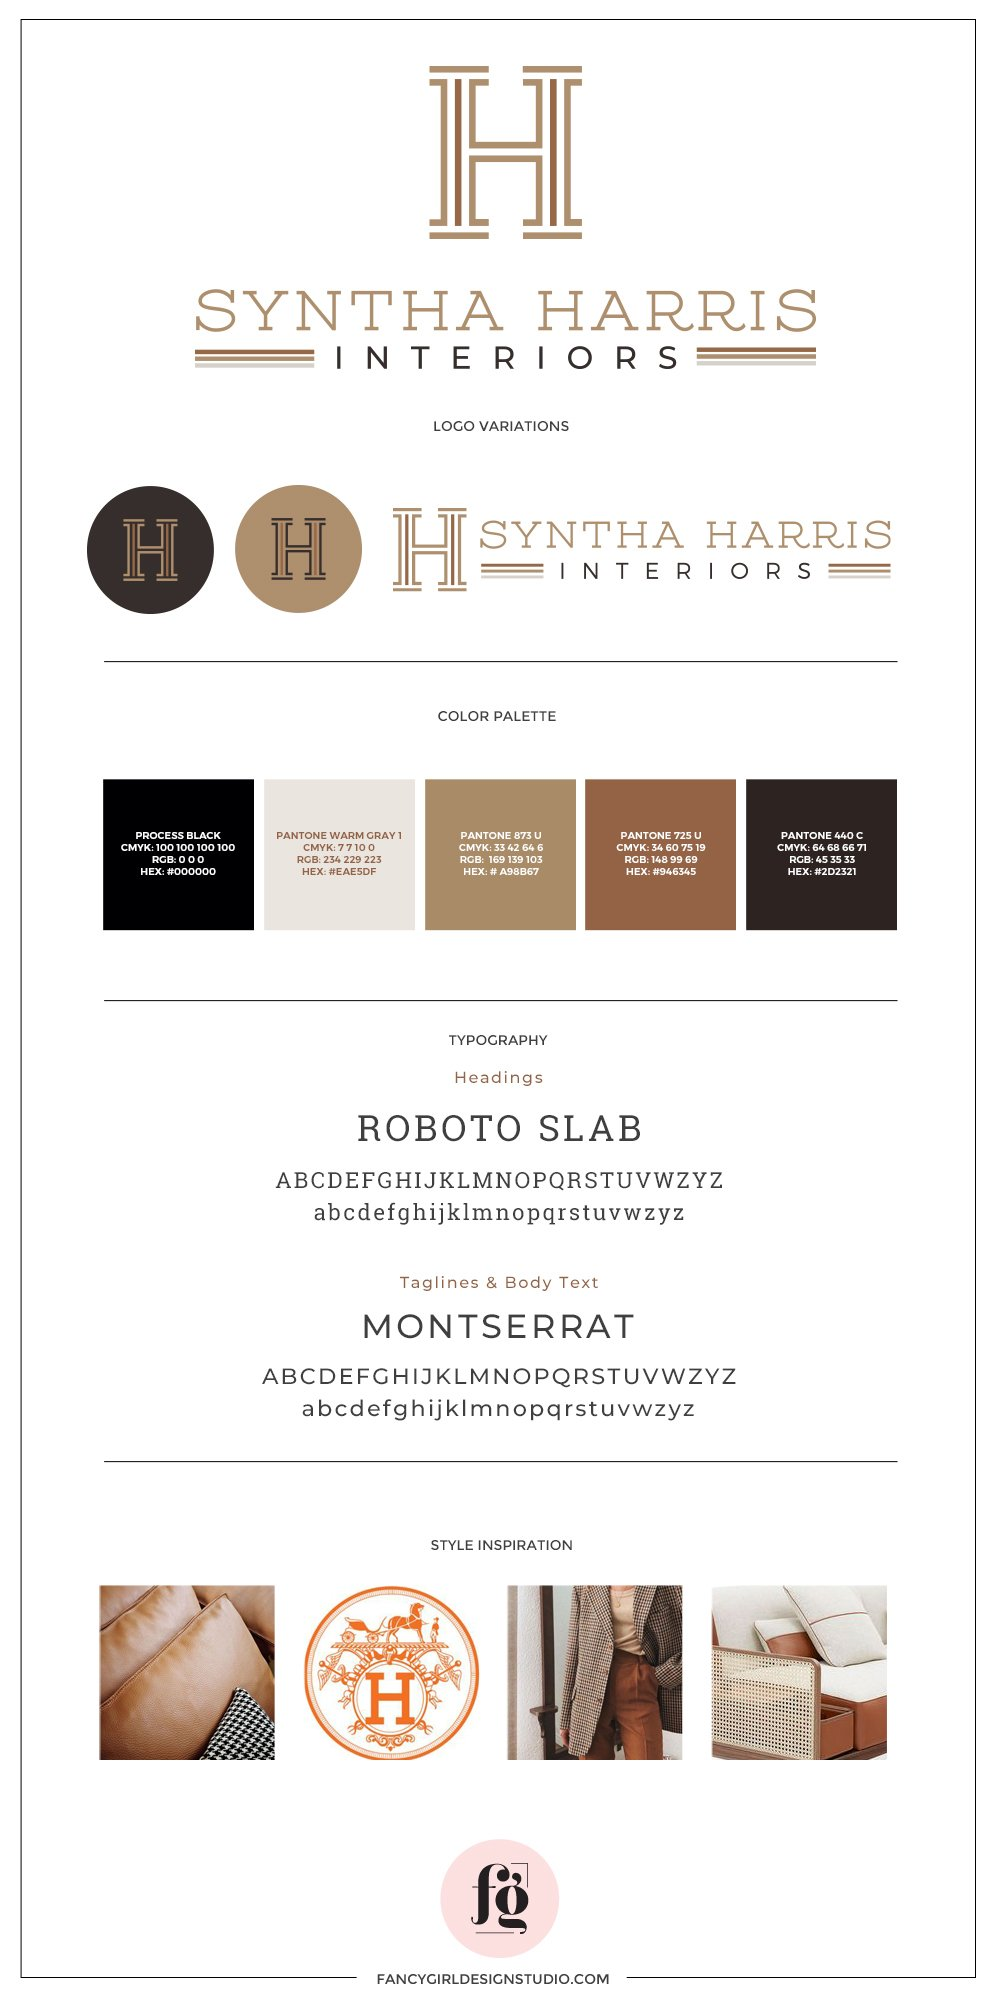 Syntha Harris Interiors Brand Guide by Fancy Girl Design Studio